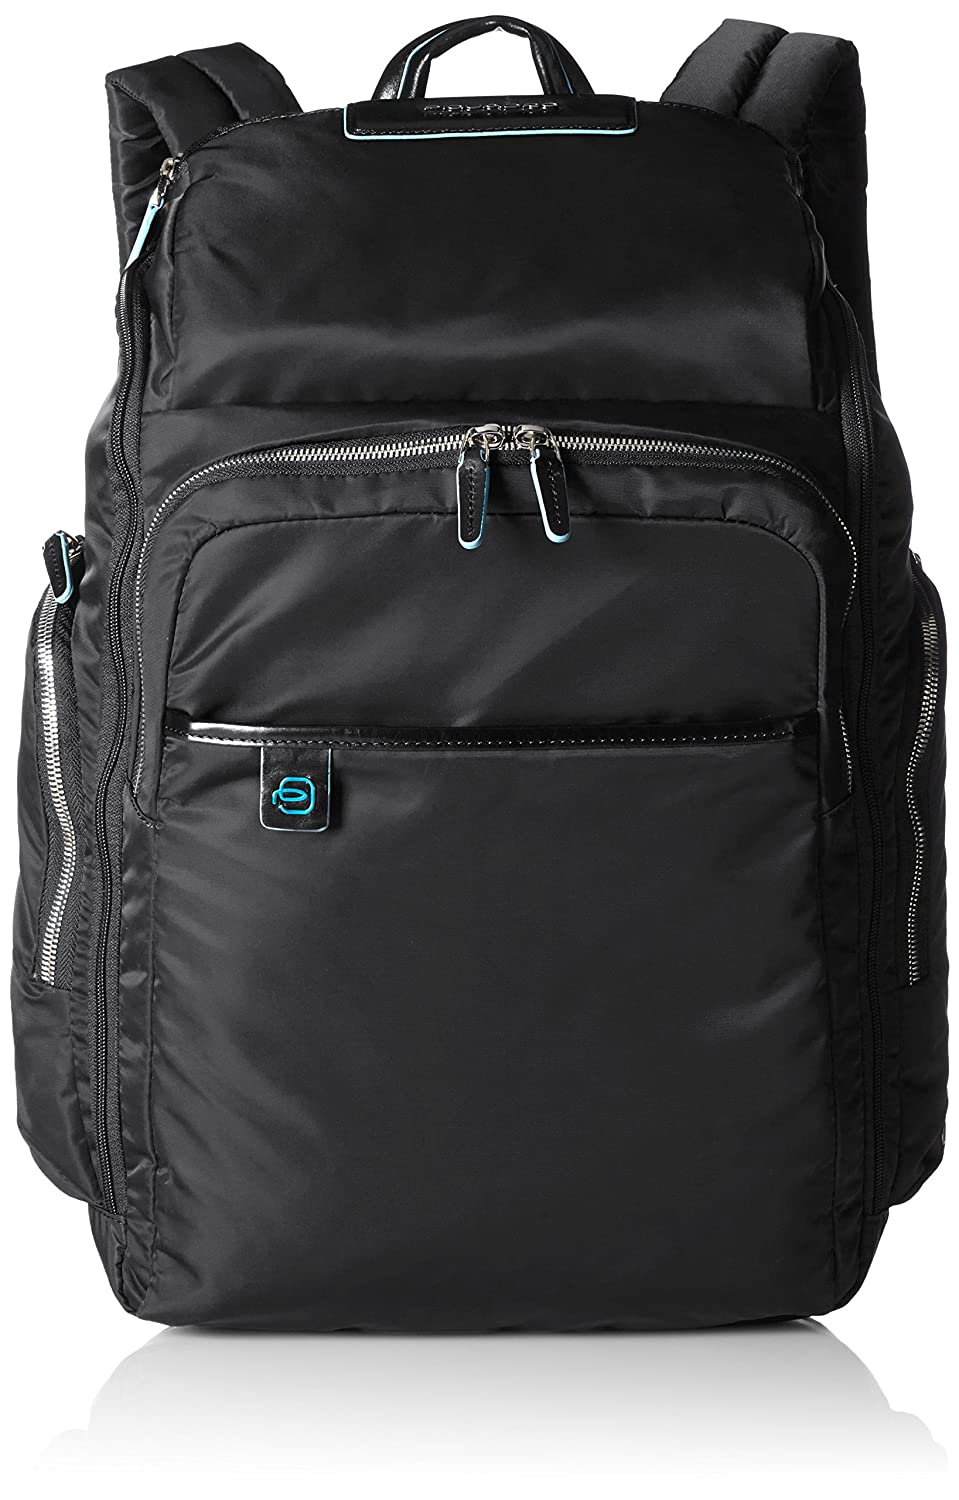 PIQUADRO Backpack CELION Male leather and fabric Black - CA3826CE-N B01BG4DFX2